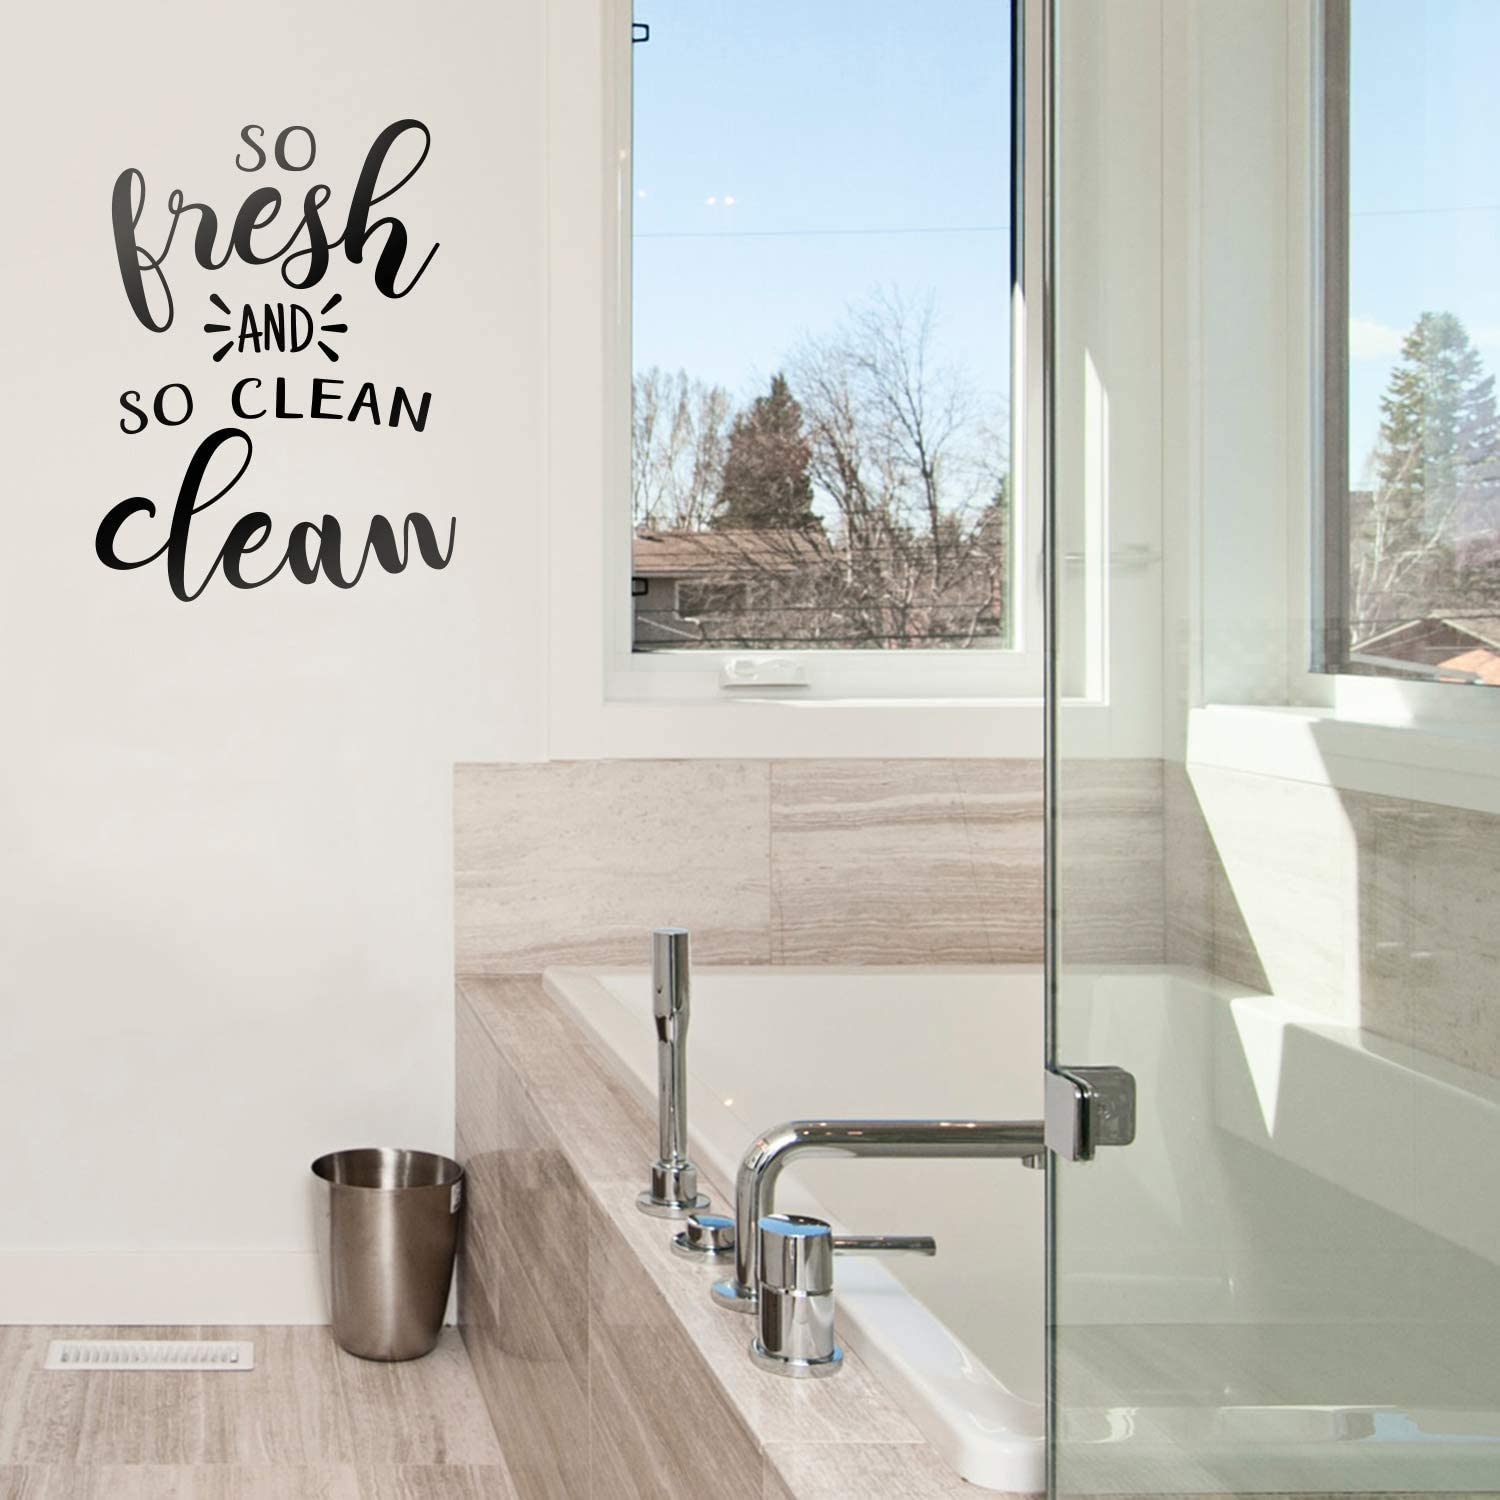 """Vinyl Wall Art Decal - So Fresh and So Clean - 25"""" x 18"""" - Fun Modern Inspirational Funny Quote Sticker for Home Bedroom Office Bathroom Store School Restroom Decor"""